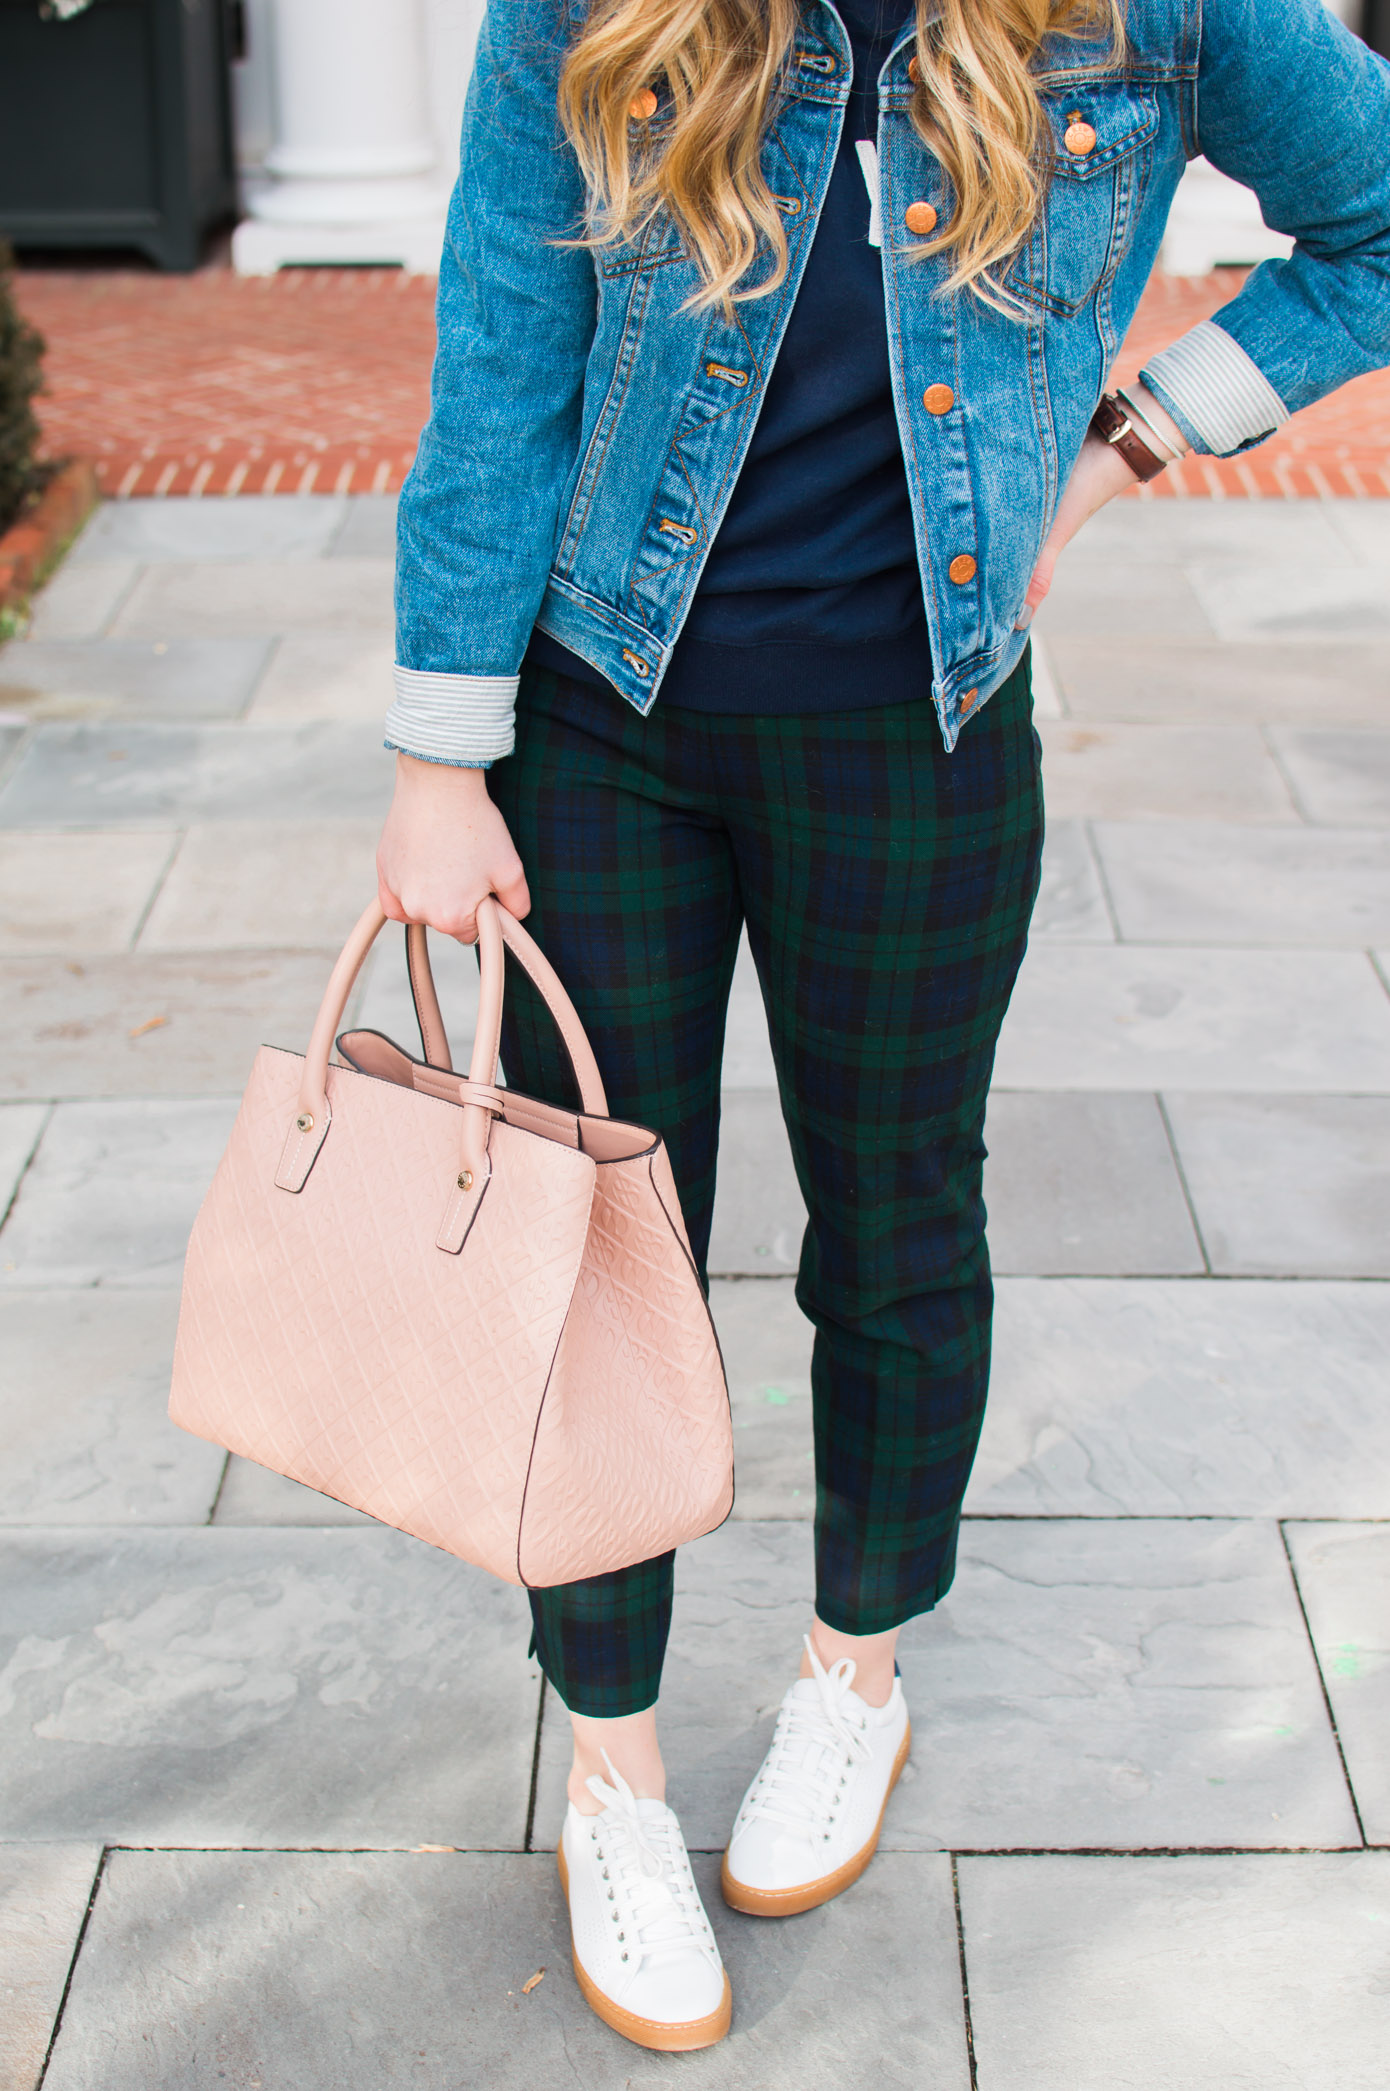 Casual Plaid Pants | How to Style Plaid Pants | Louella Reese Life & Style Blog